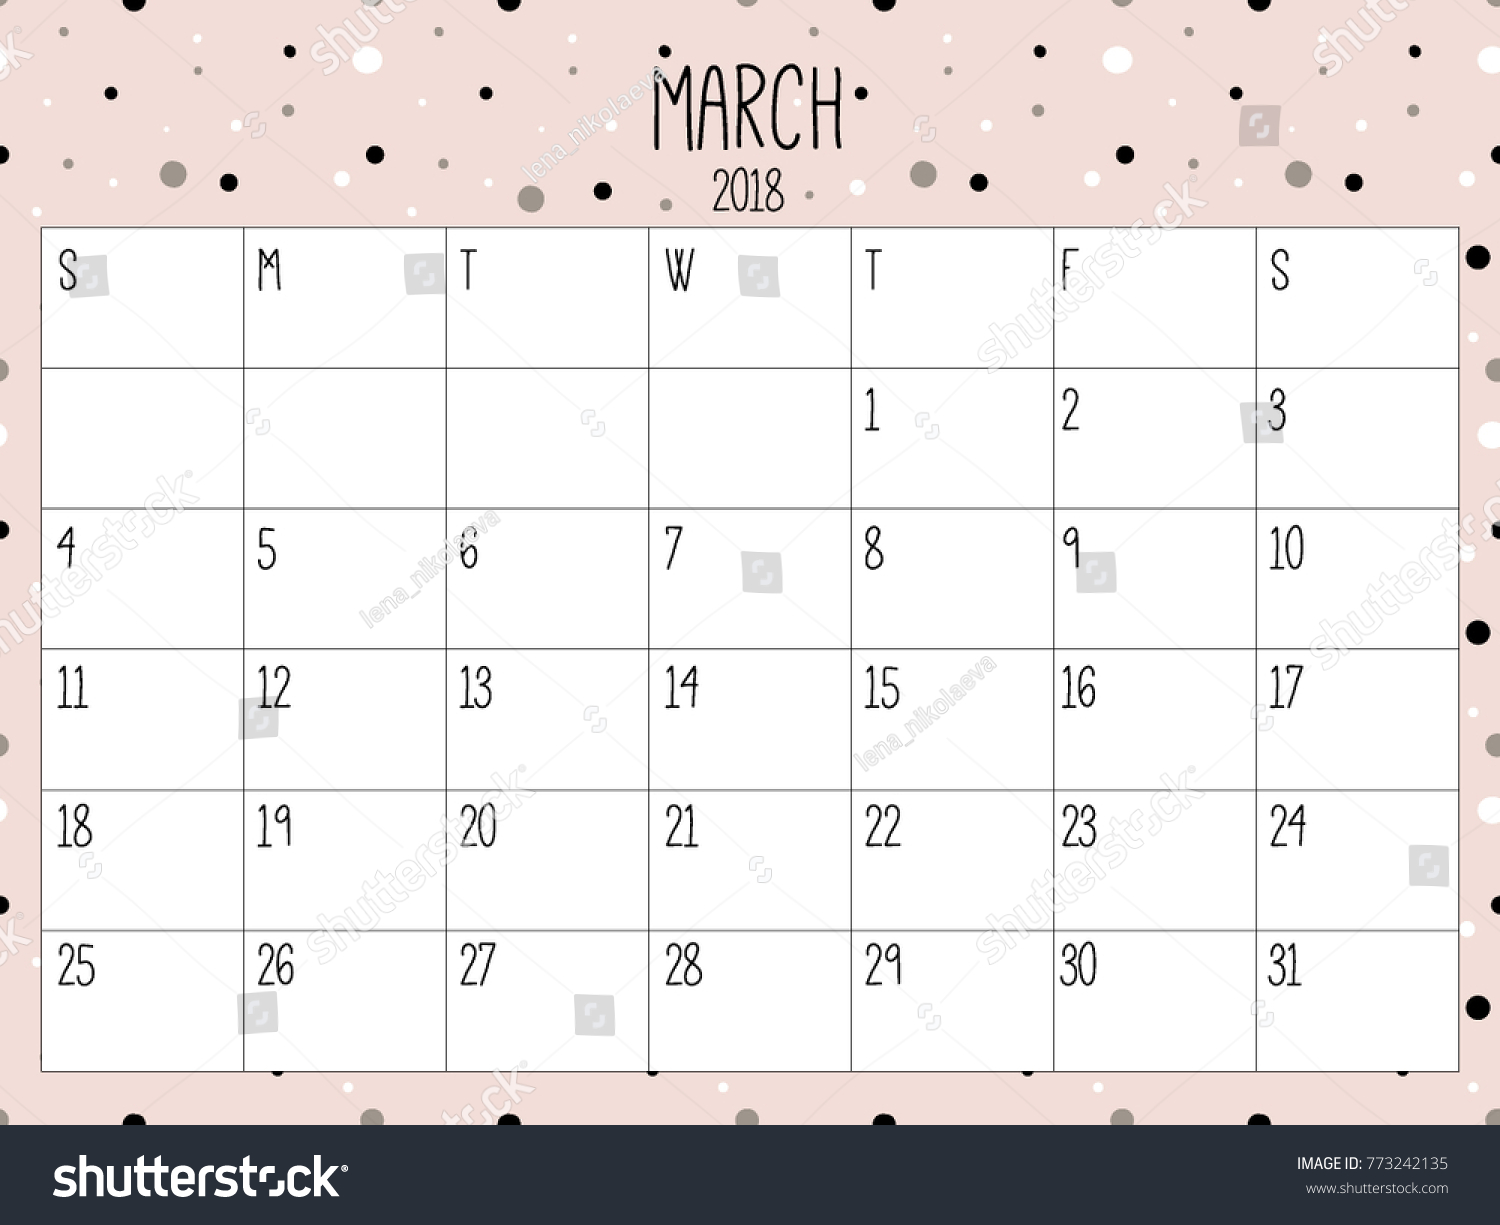 Calendar Monthly March : March calendar picture ideas